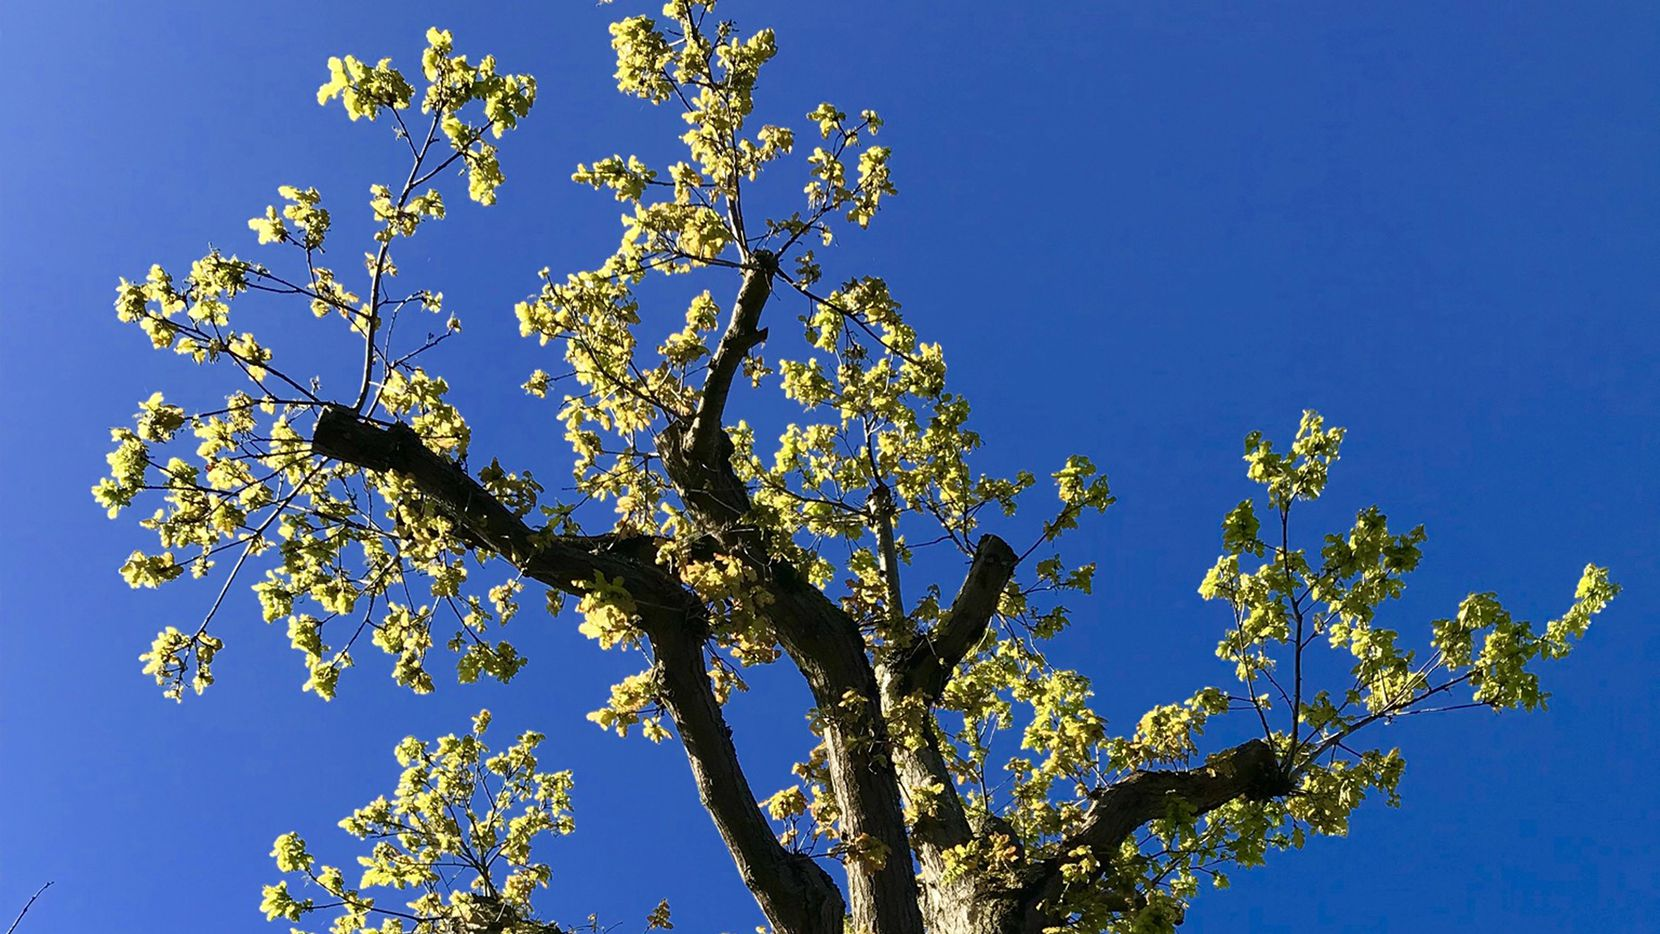 If necessary, trees can be reduced in height through proper pruning methods that cut lateral branches back to the parent limb.